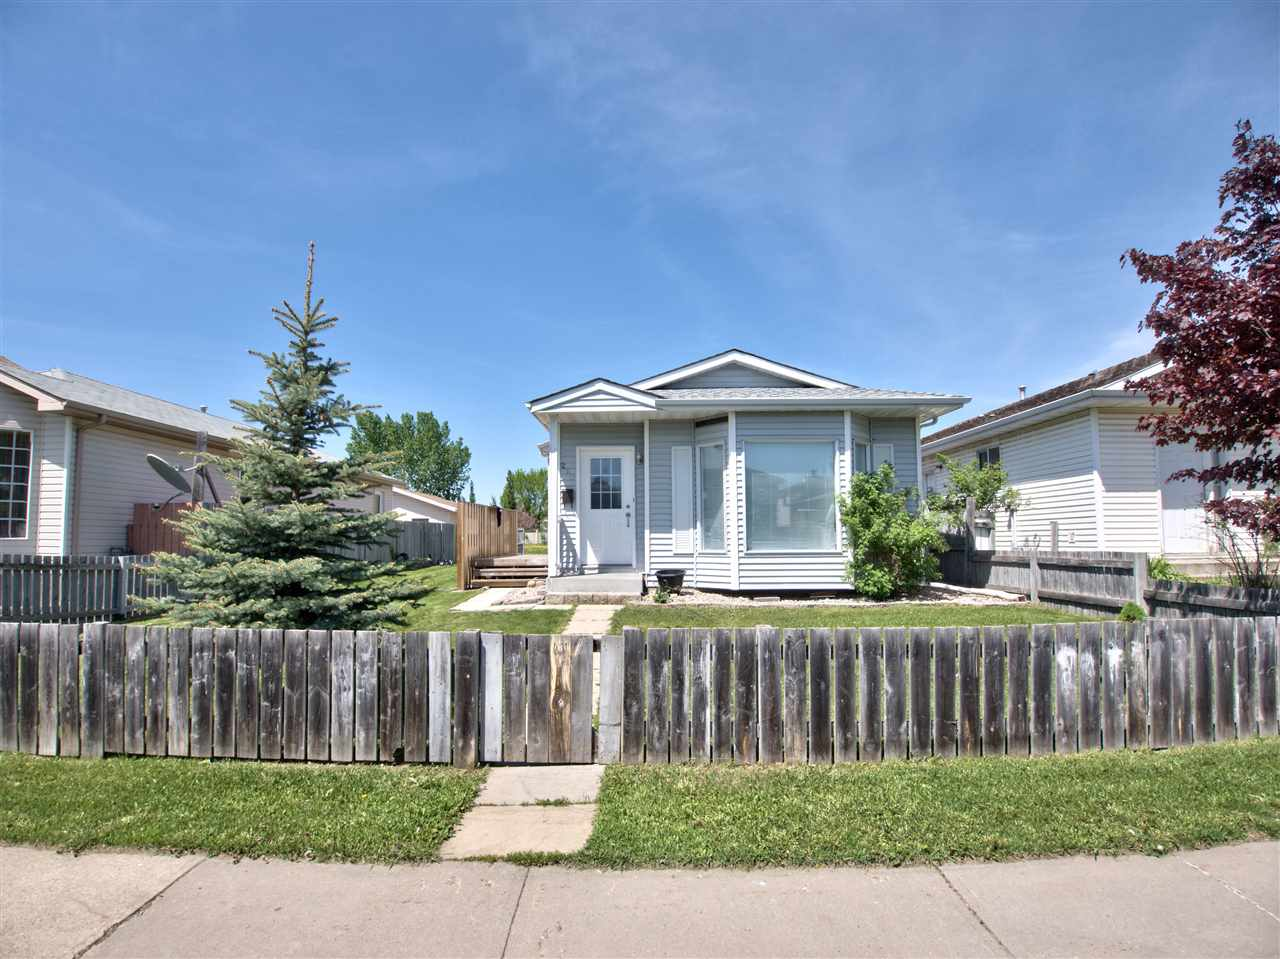 Main Photo: 260 KIRKWOOD Avenue in Edmonton: Zone 29 House for sale : MLS(r) # E4067051